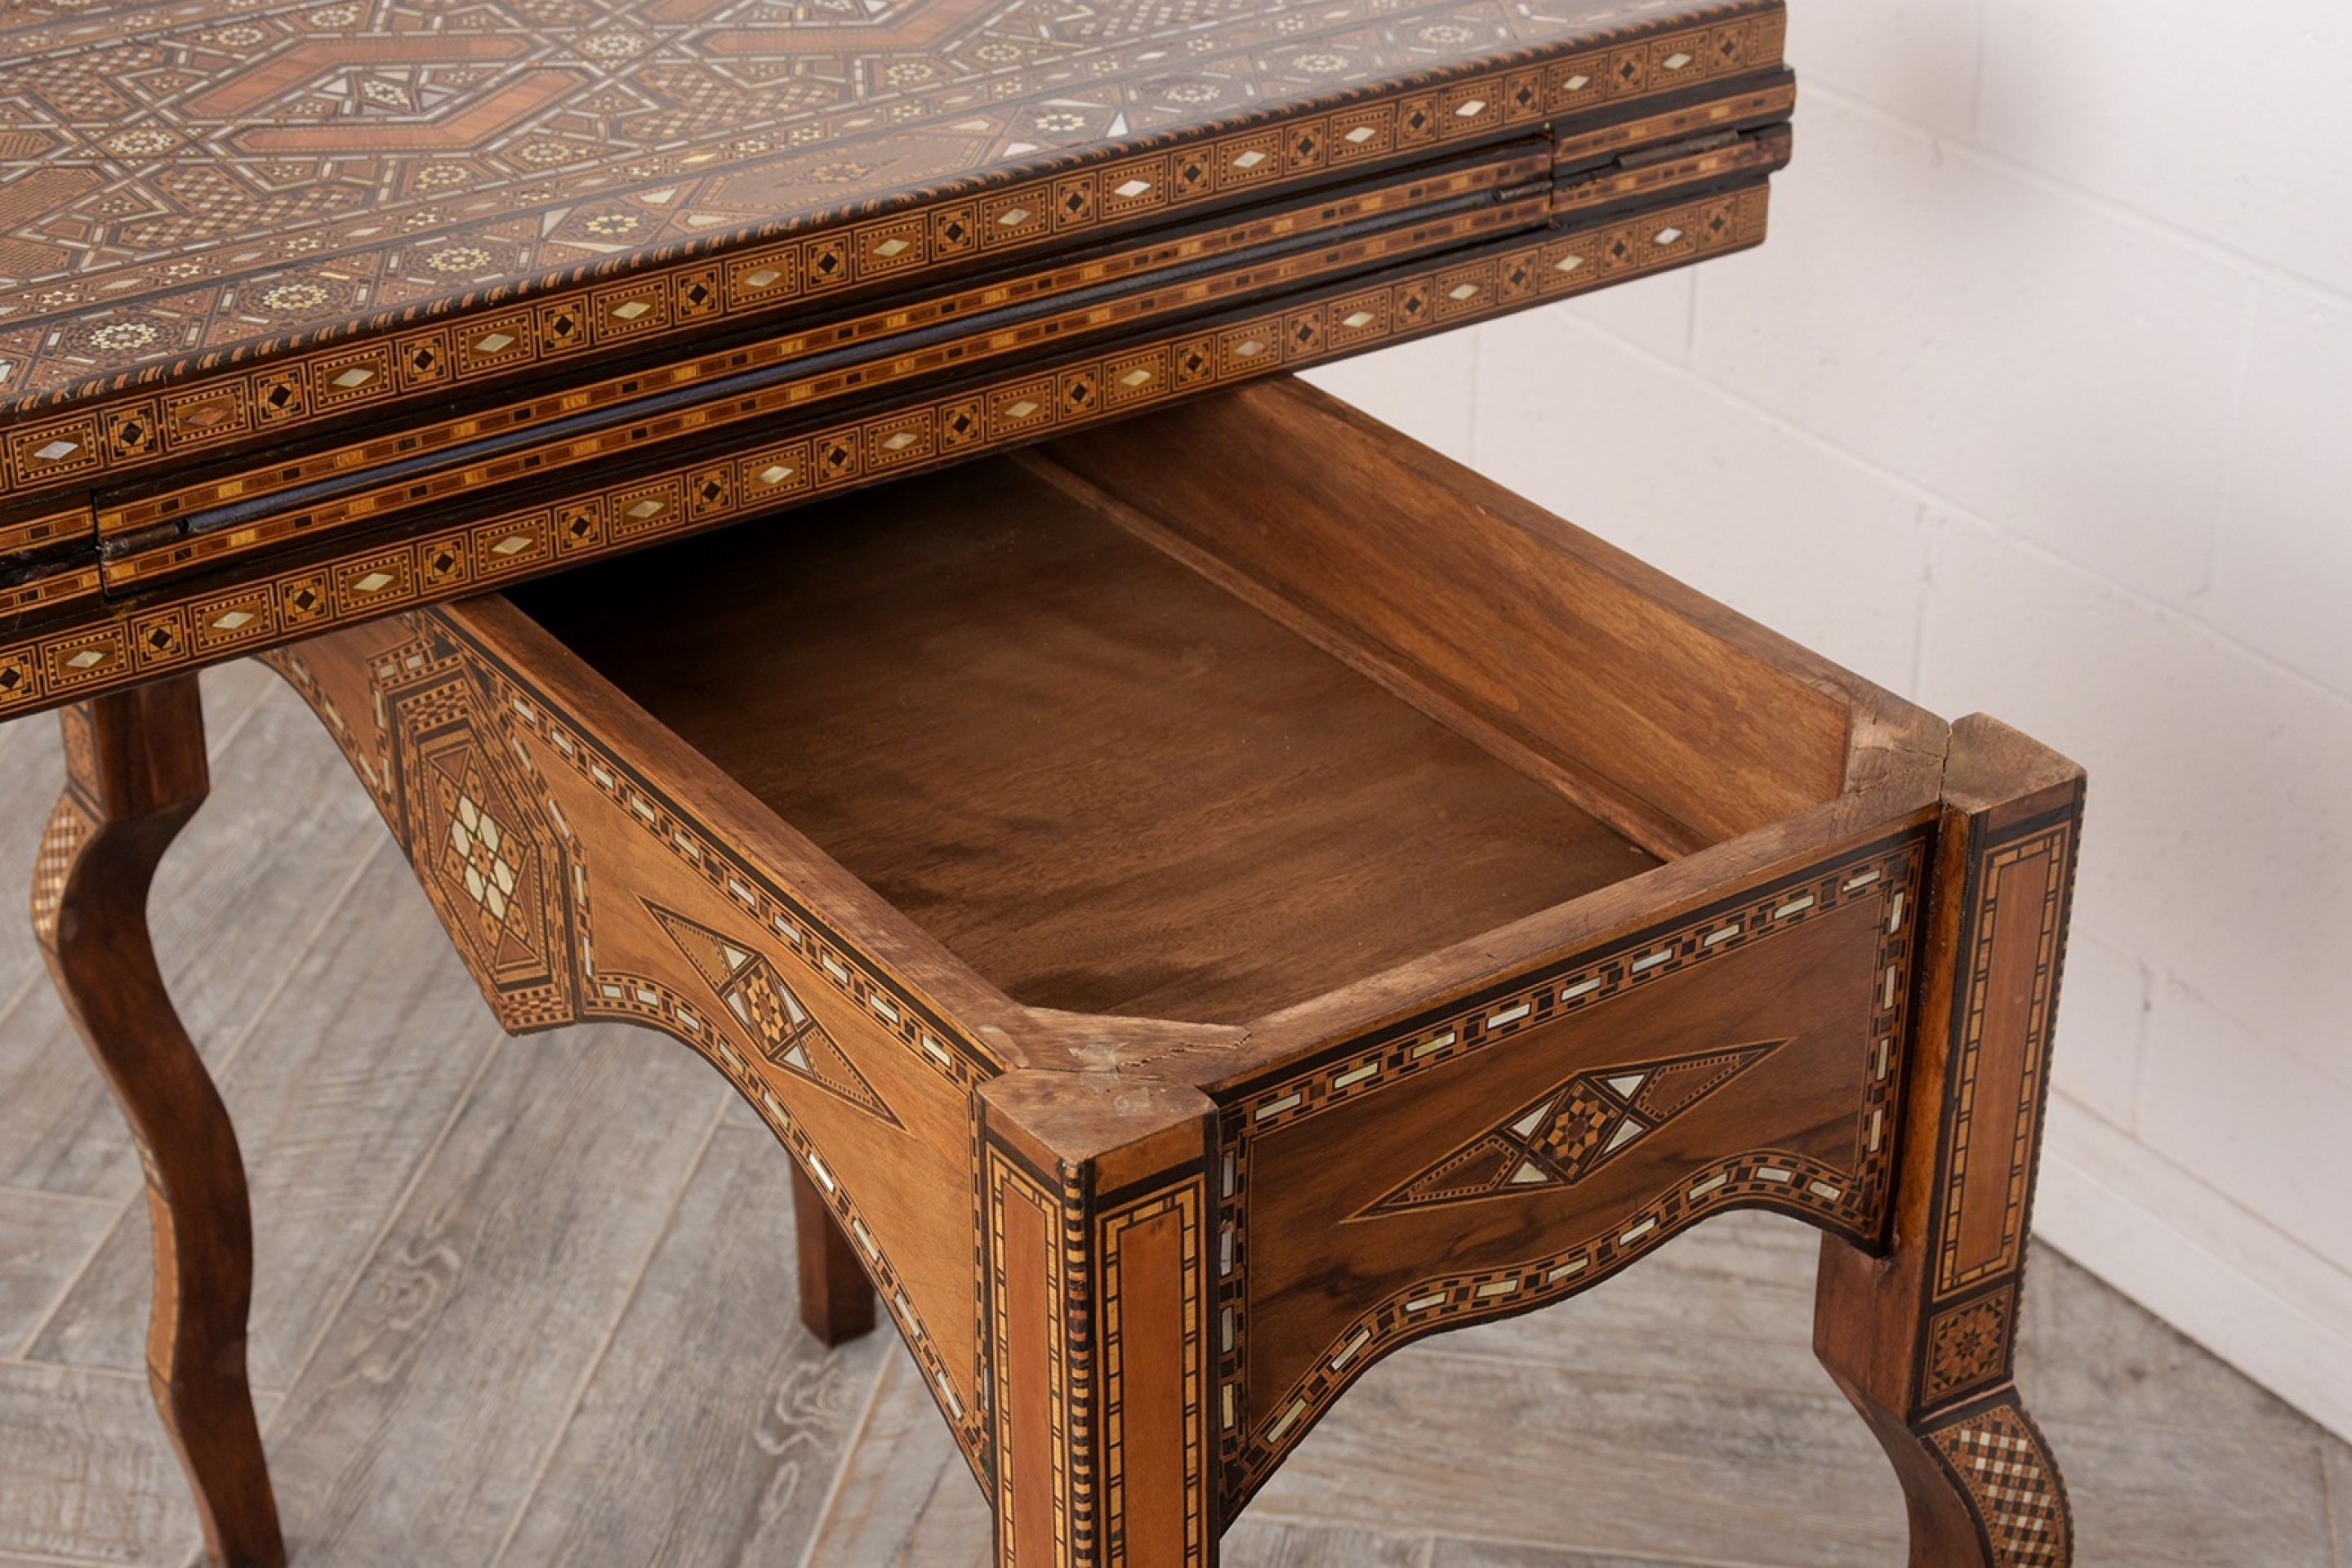 Completely Restored Late 19th Century Syrian Game Table